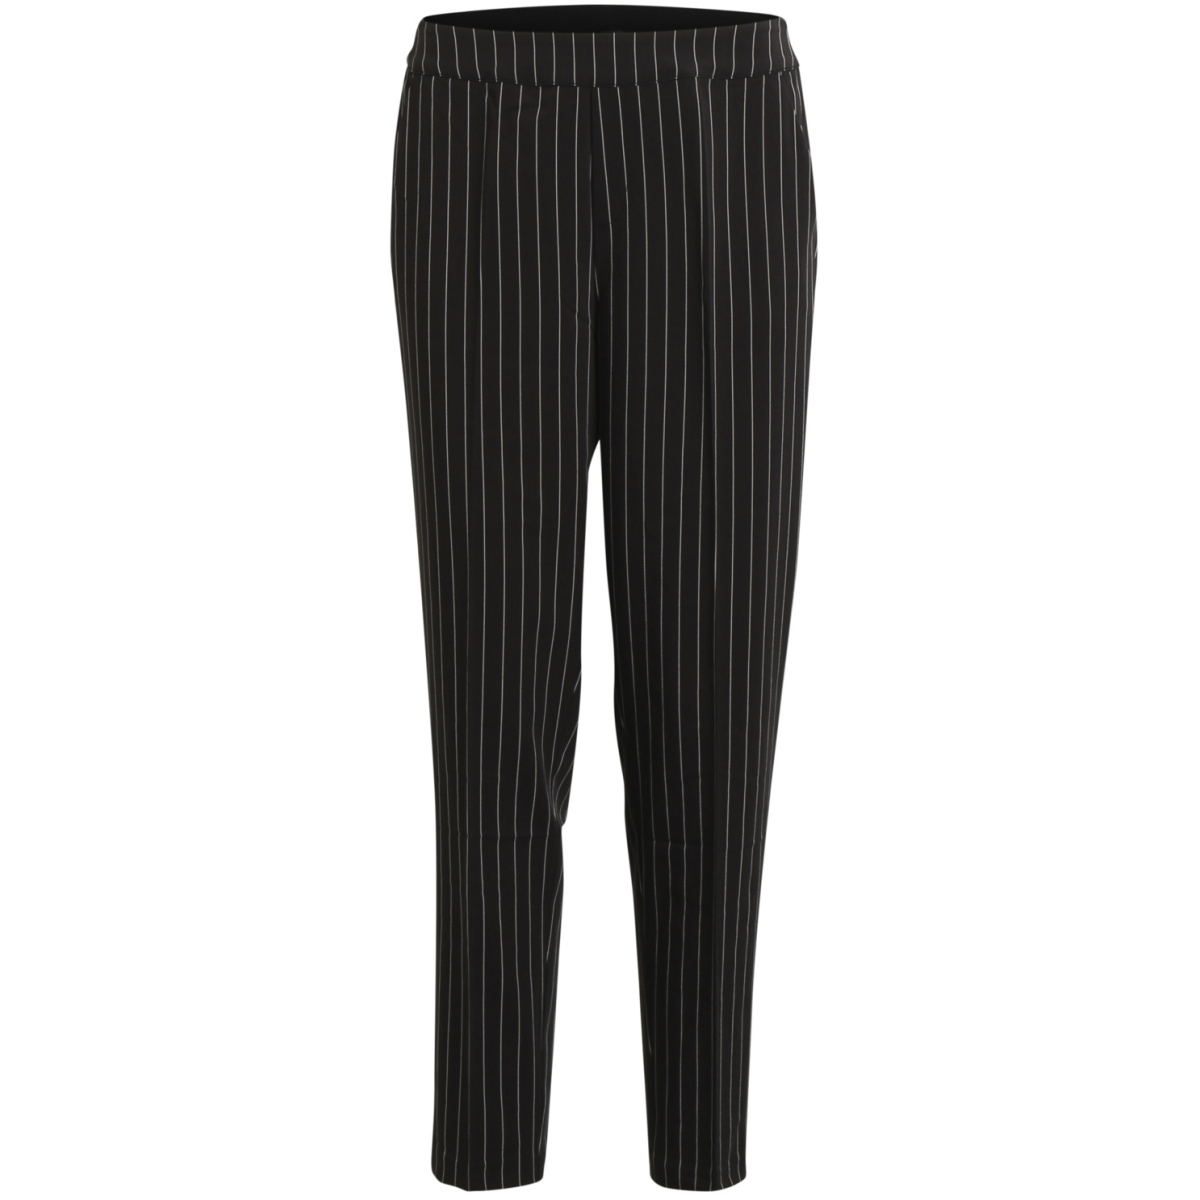 objcecilie mw striped 7/8 pant a 23026929 object broek black/white pins